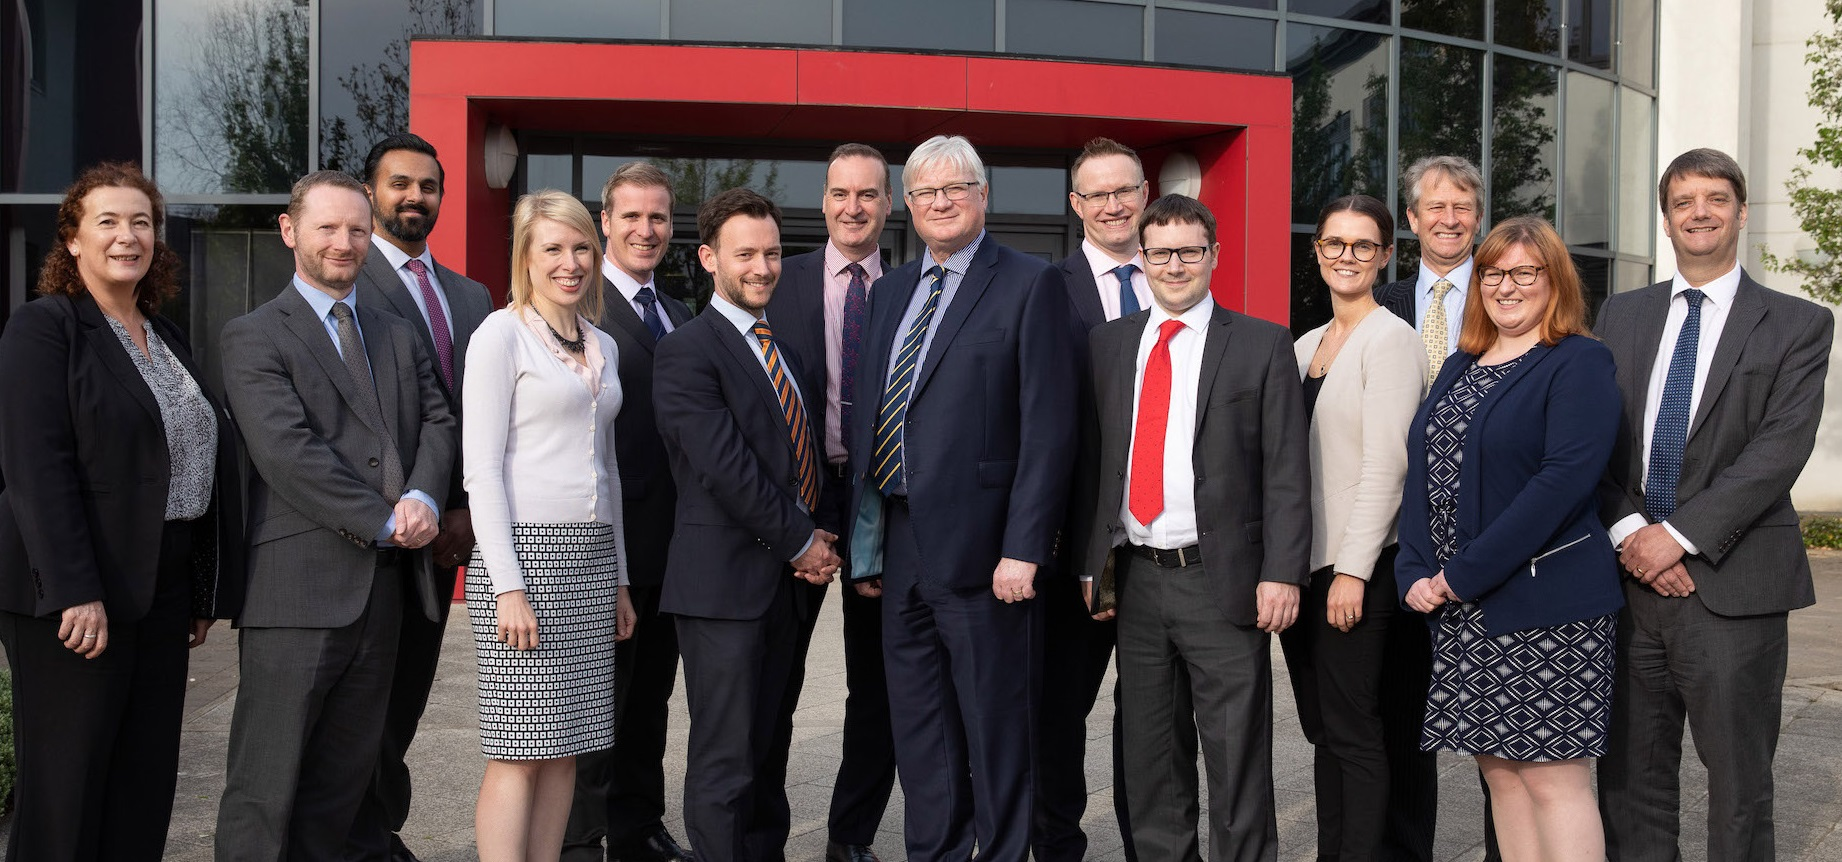 East Midlands law firm opens Corby office